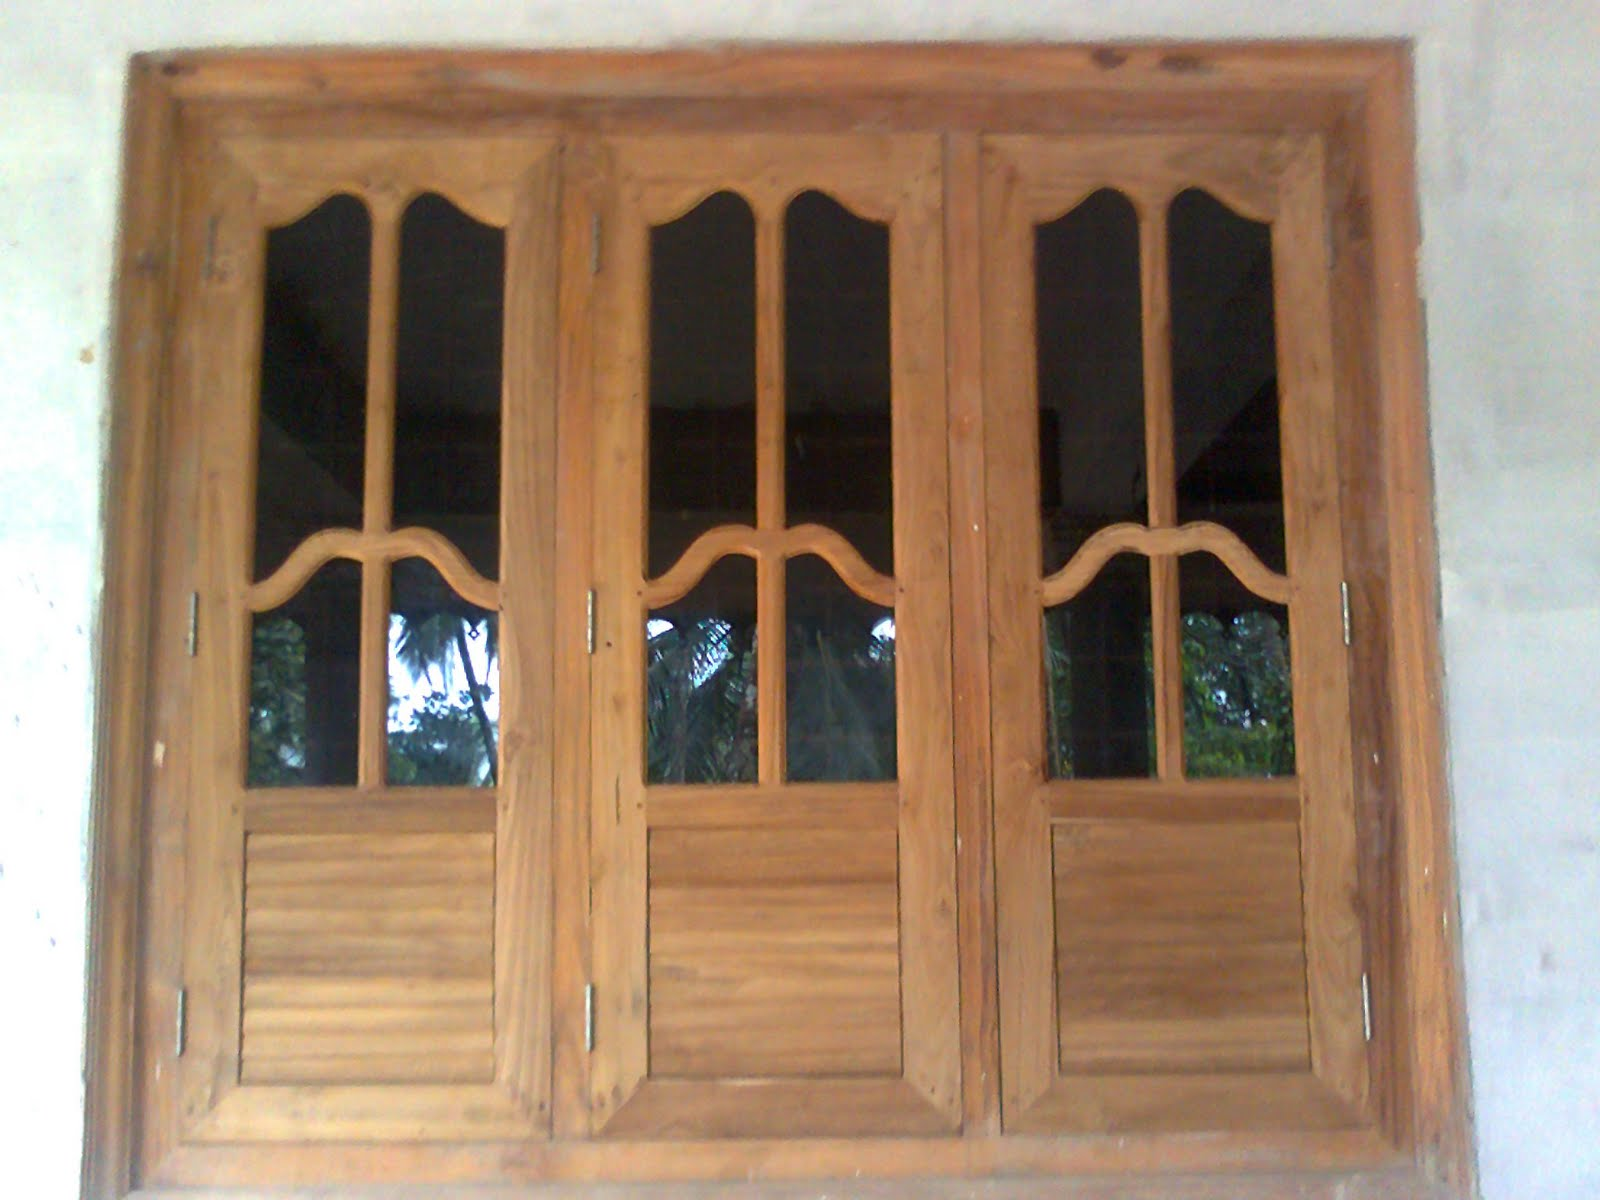 Bavas wood works wooden window doors simple designs for Wood doors and windows